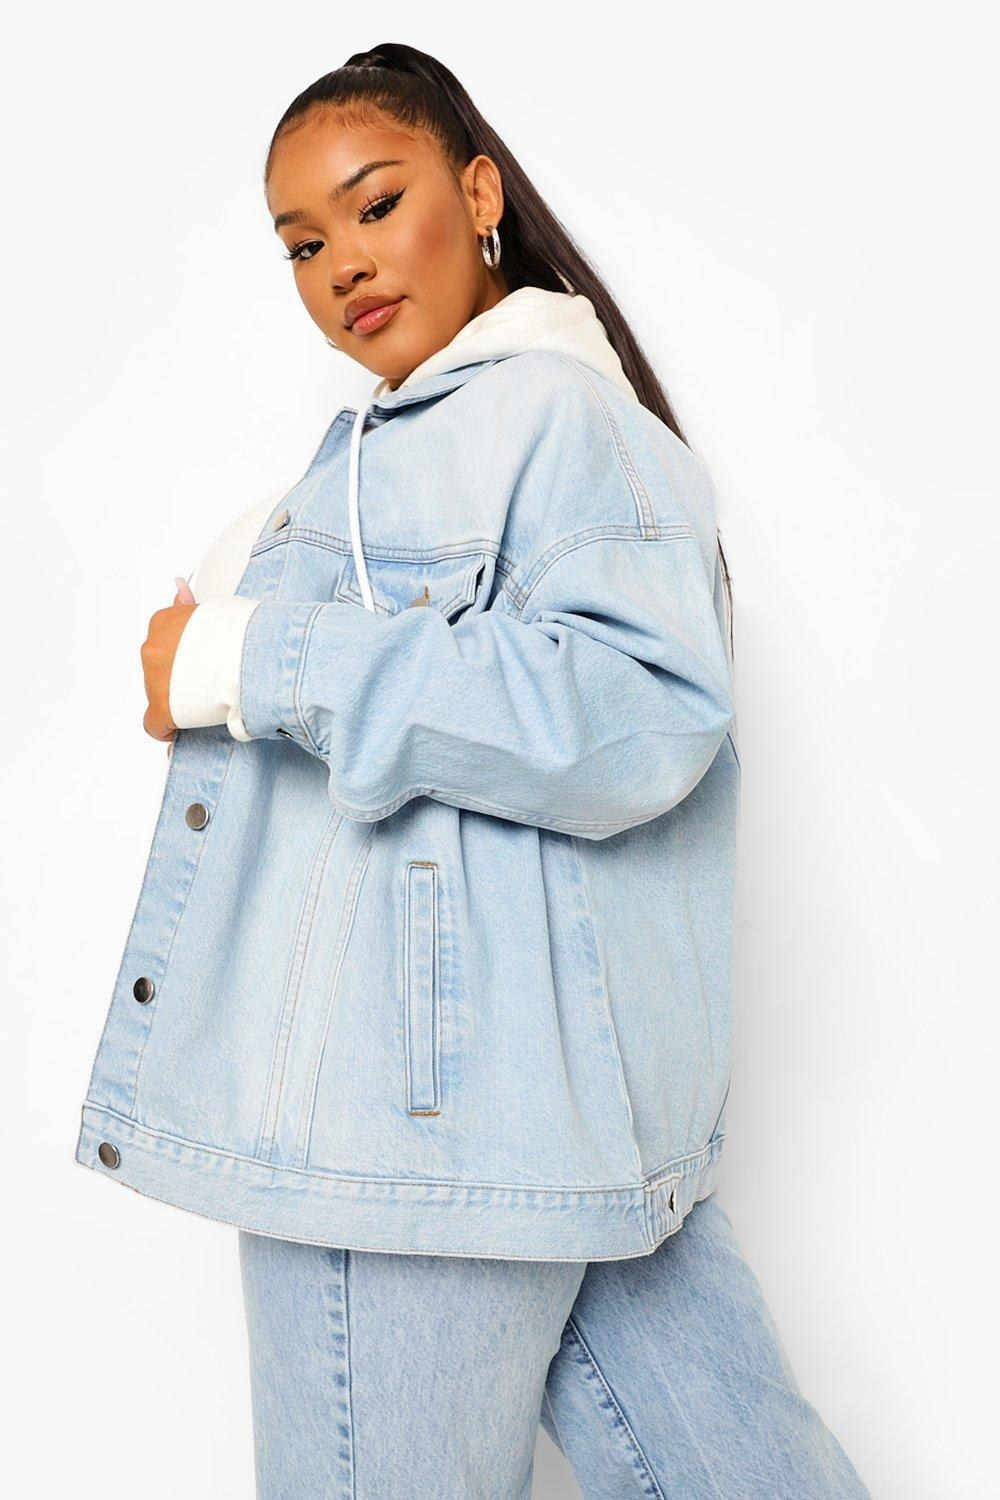 model in light blue denim jacket, white hoodie, and jeans